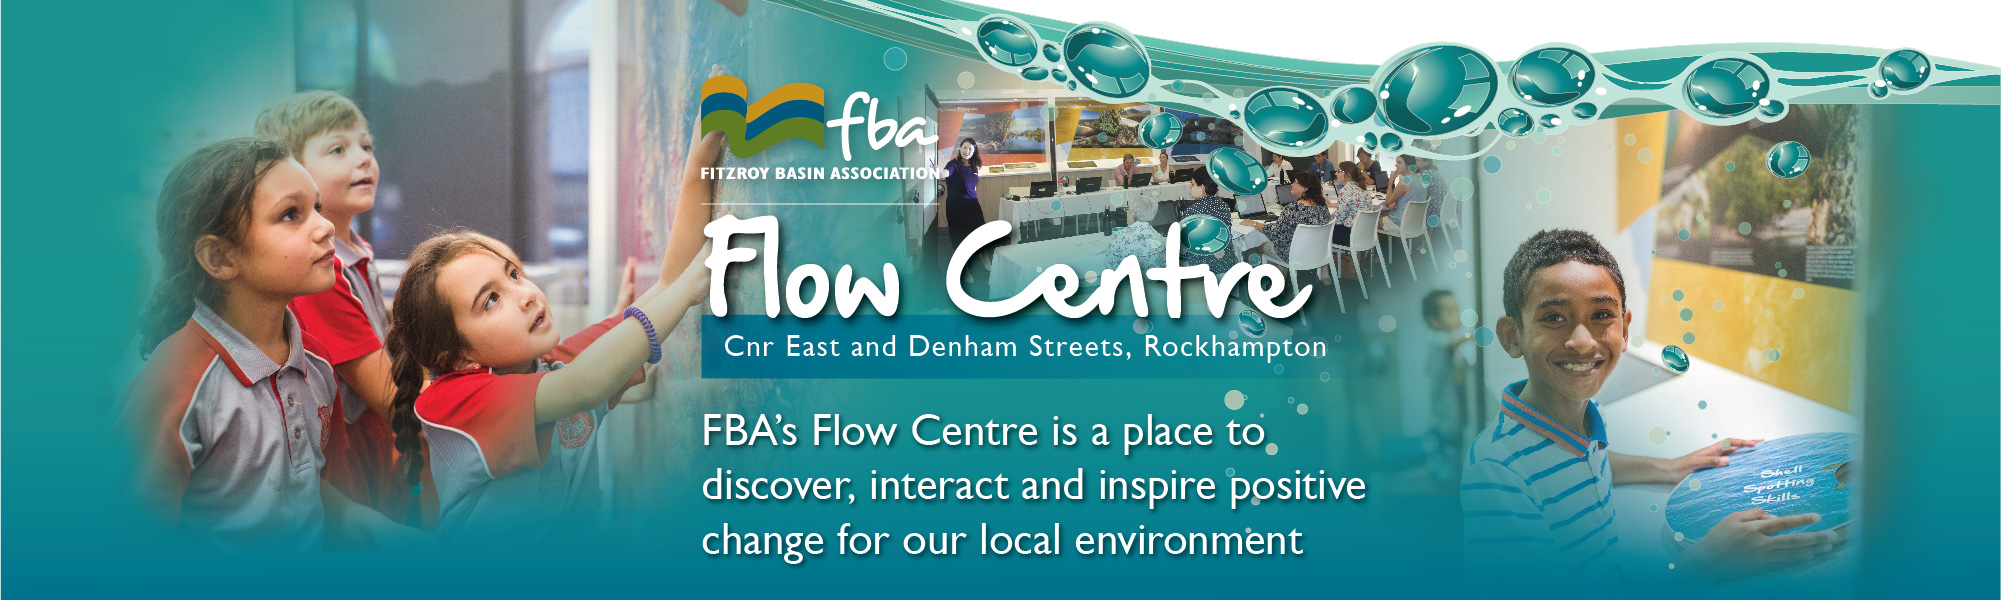 FBA Flow Centre Digital Collateral__Web Banner Desktop